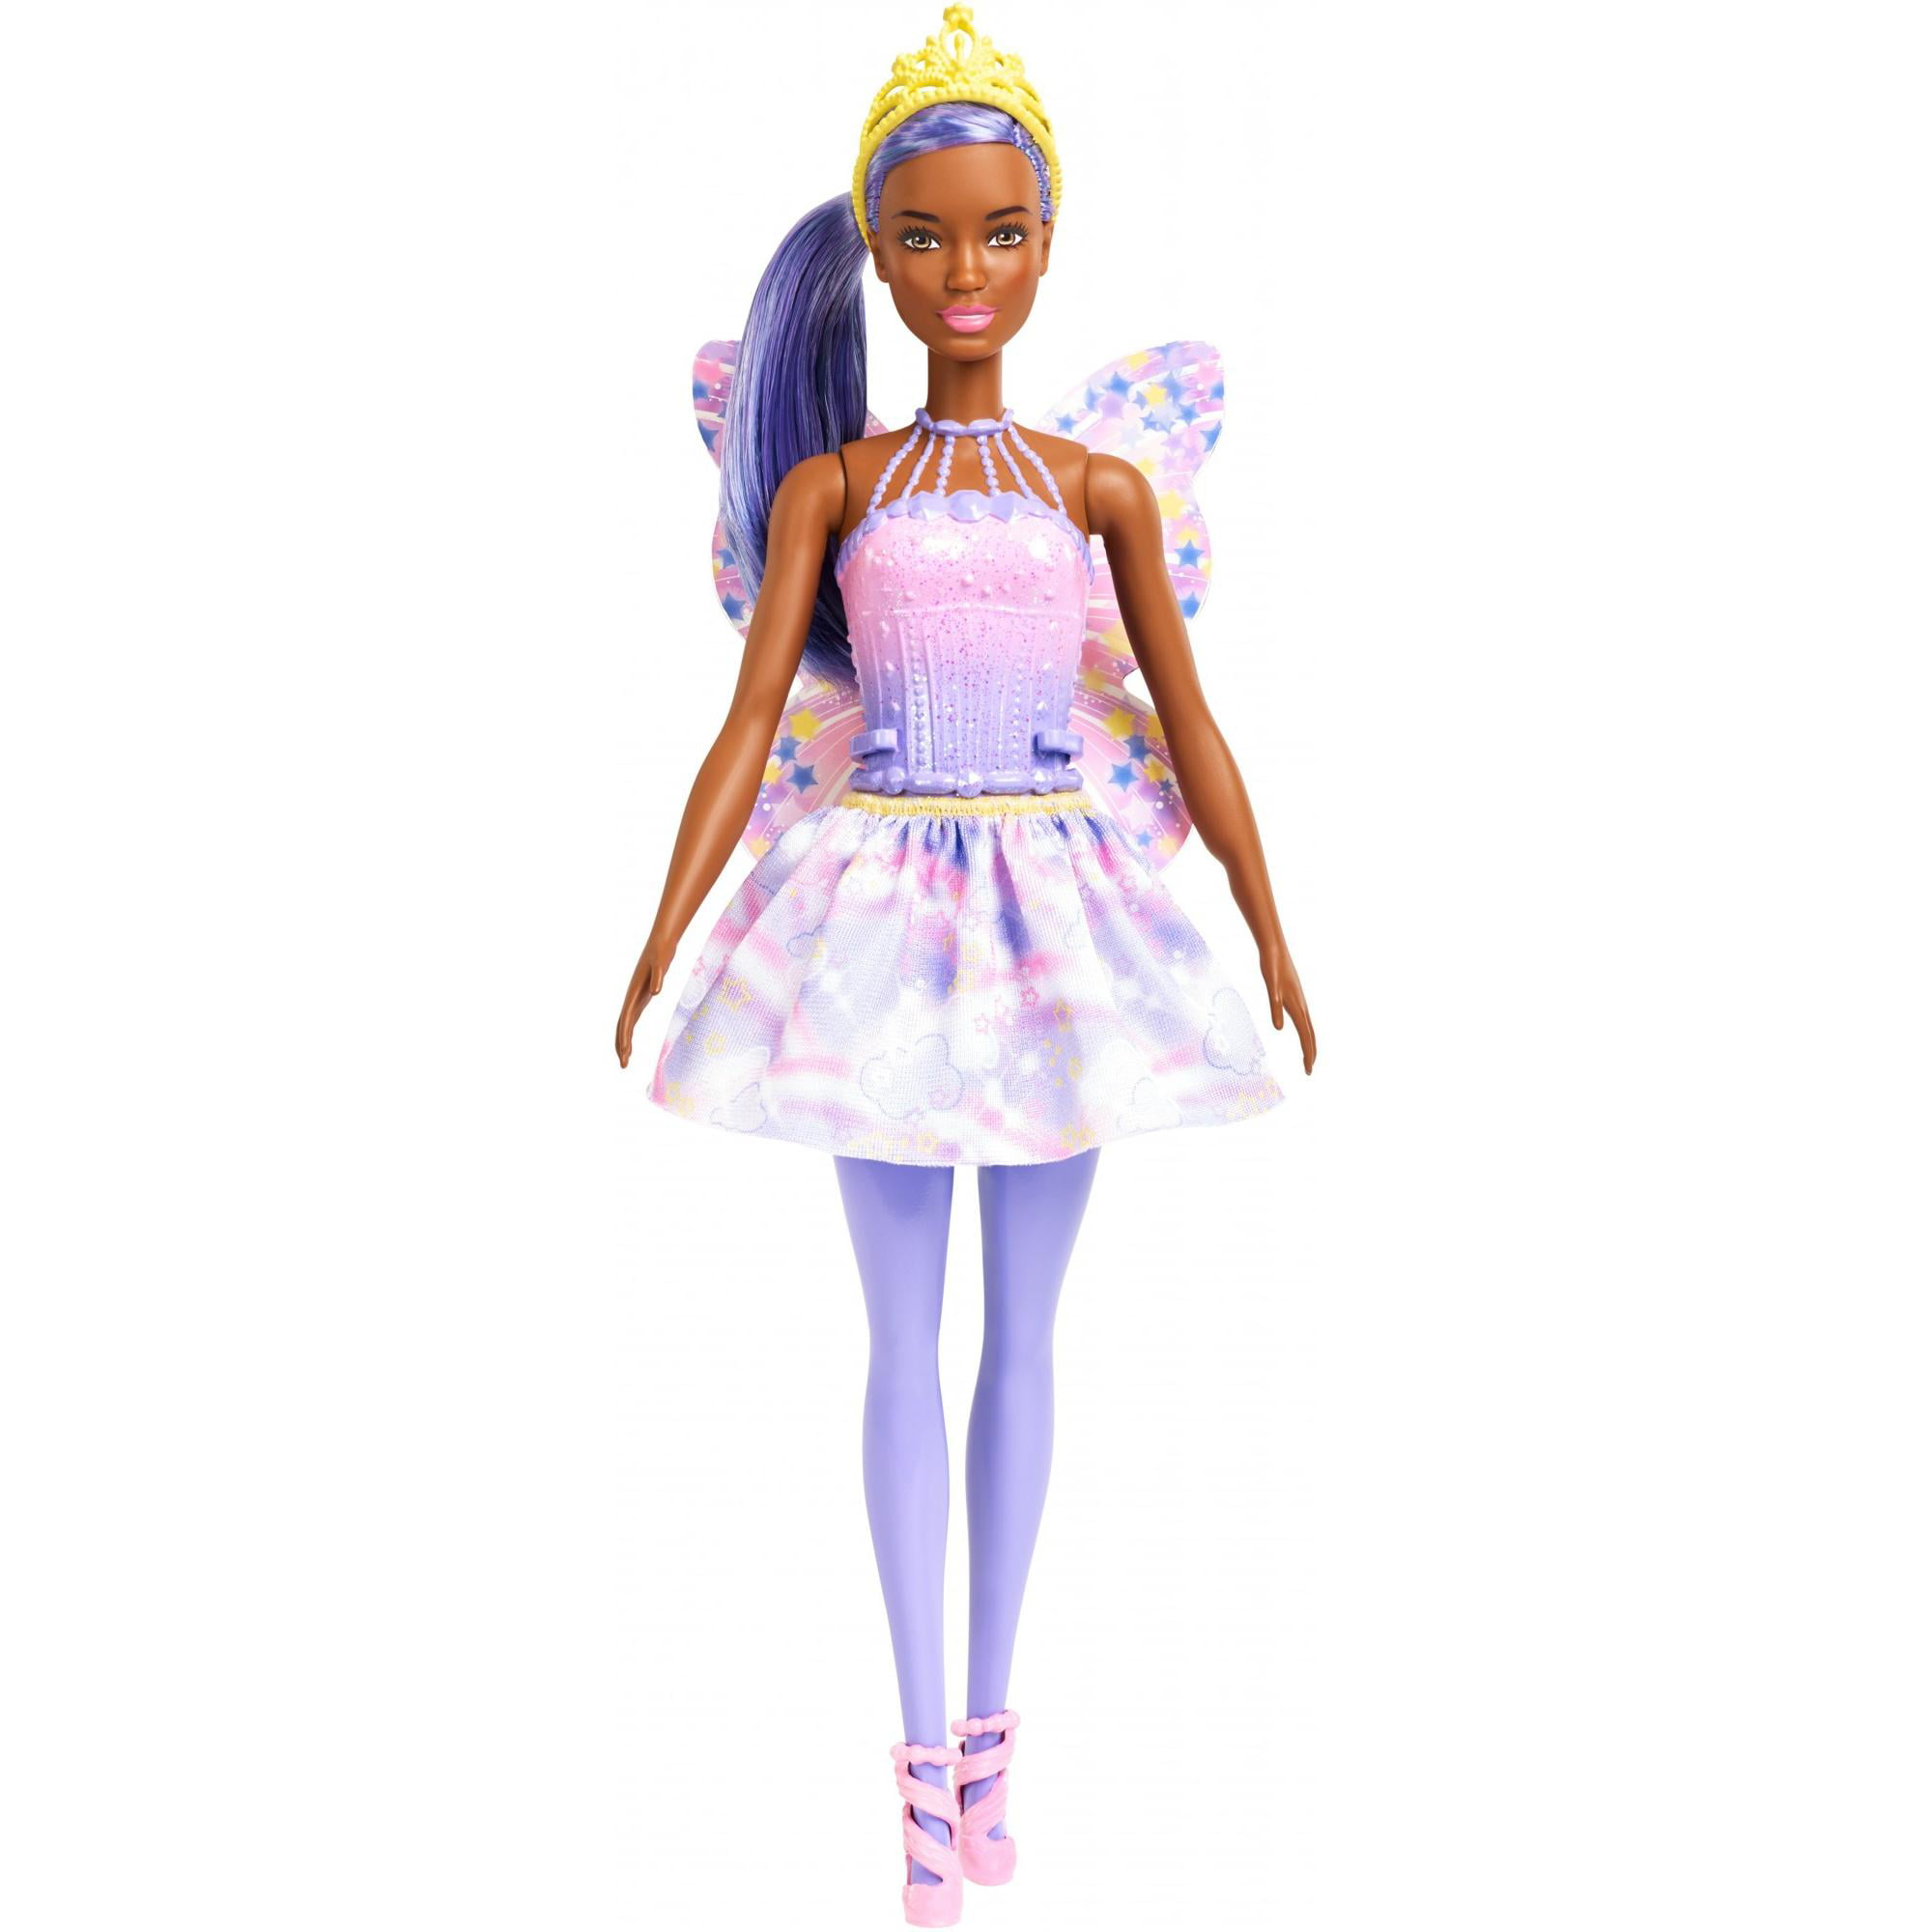 Barbie Dreamtopia Fairy Doll, Purple Hair & Star-Decorated Wings by Mattel